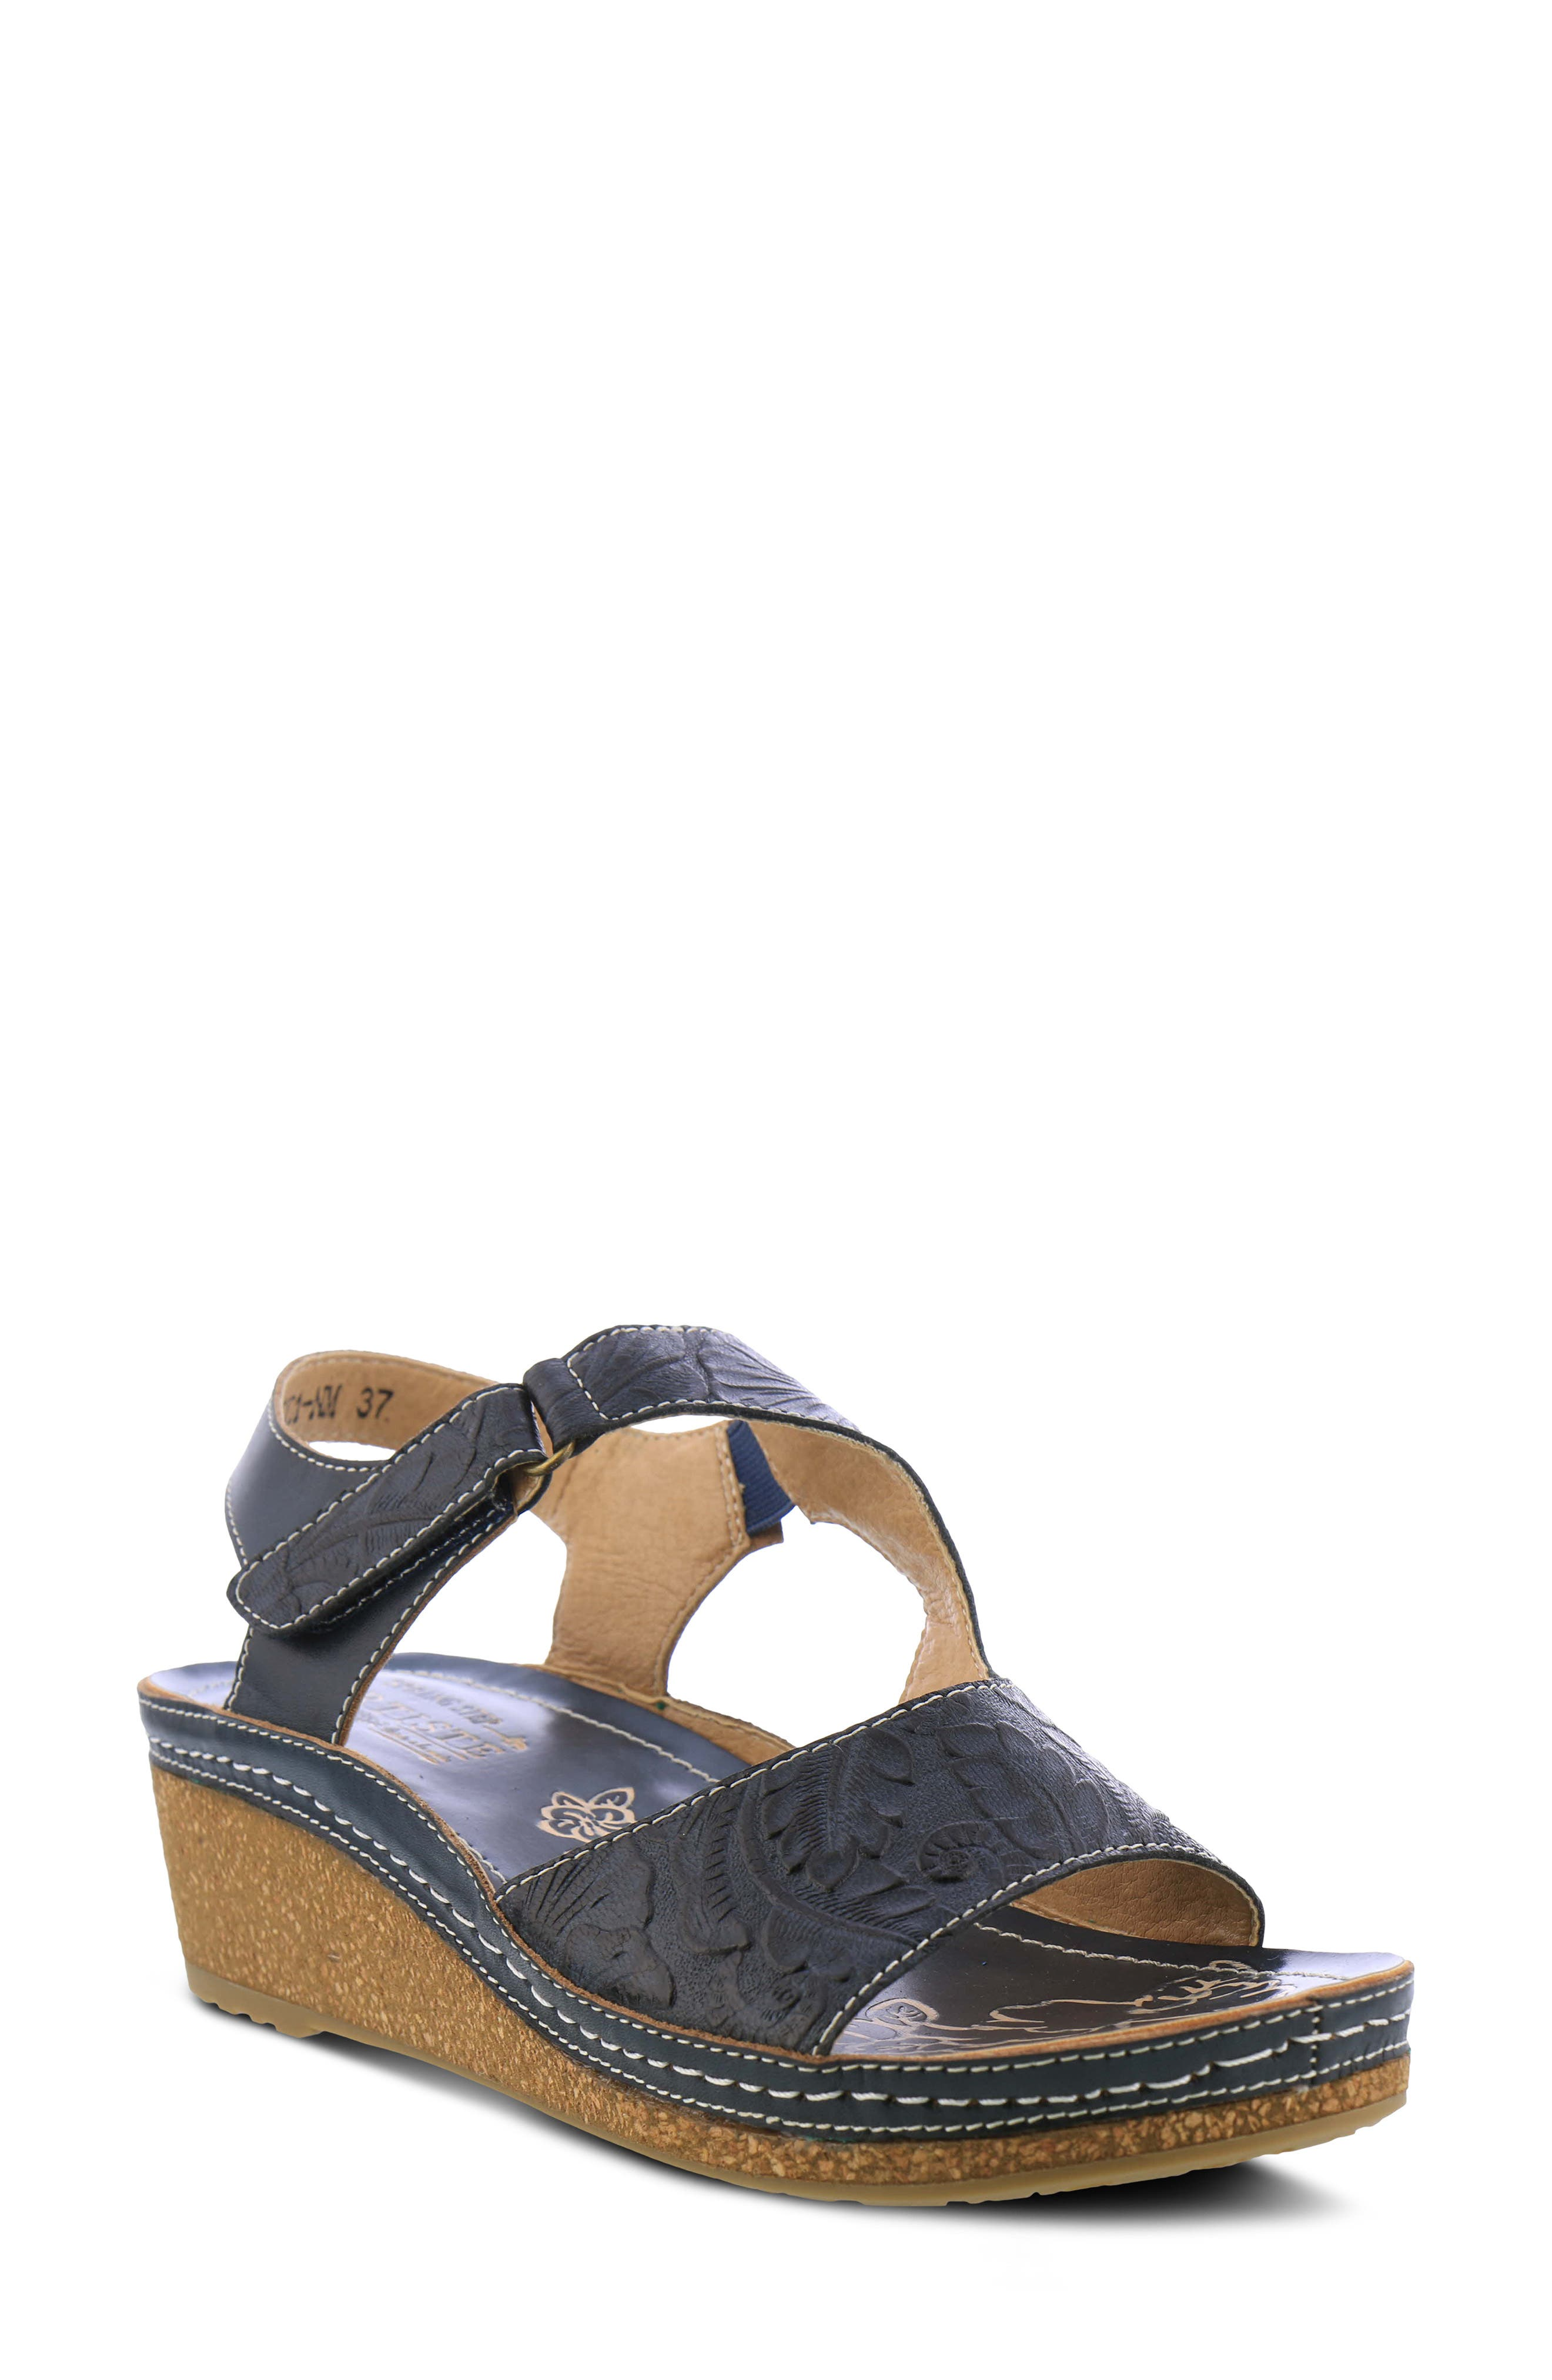 Hand-tooled floral embossing brings beautiful pattern and texture to the leather straps of a breezy sandal lifted by a comfortable cork-infused wedge. Style Name:L\\\'Artiste Zeta Wedge Sandal (Women). Style Number: 6000067. Available in stores.